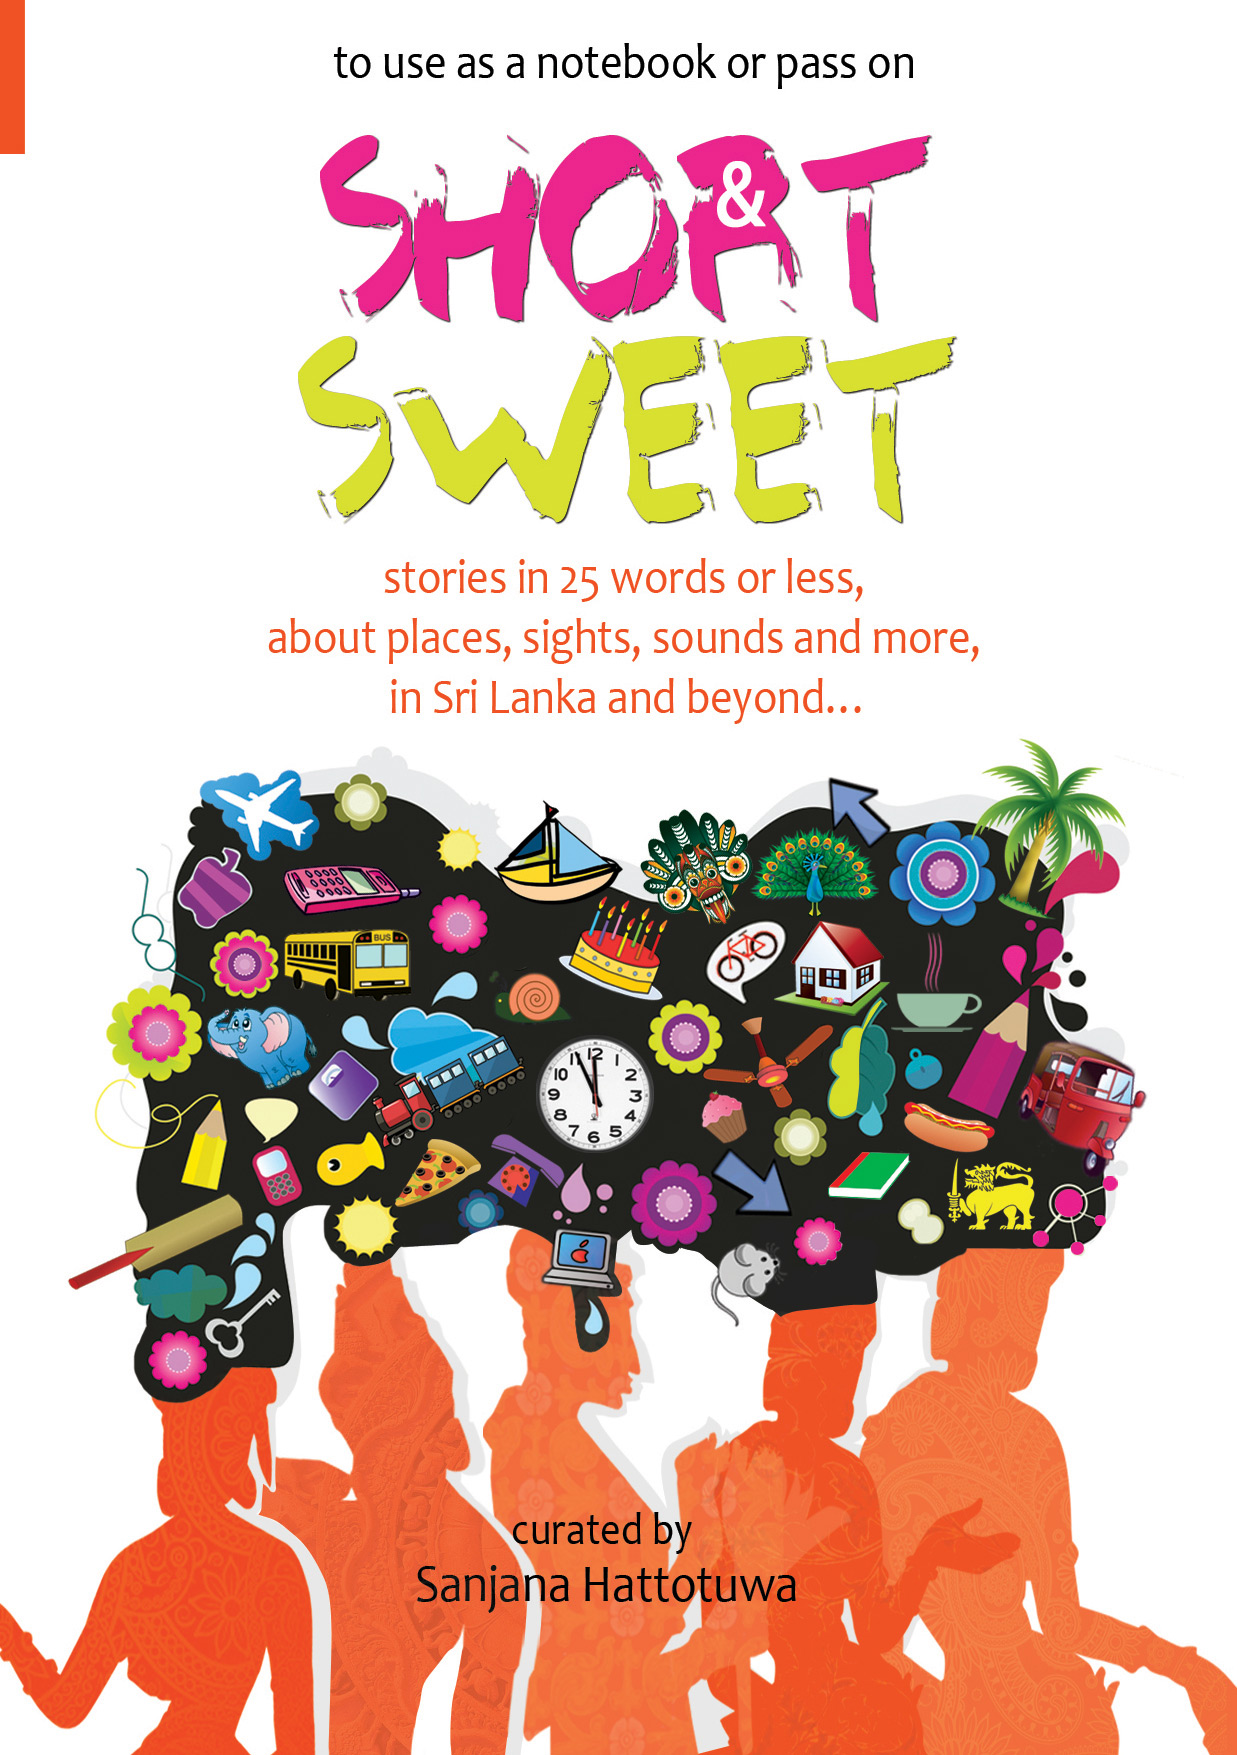 Short & Sweet Cover - new f